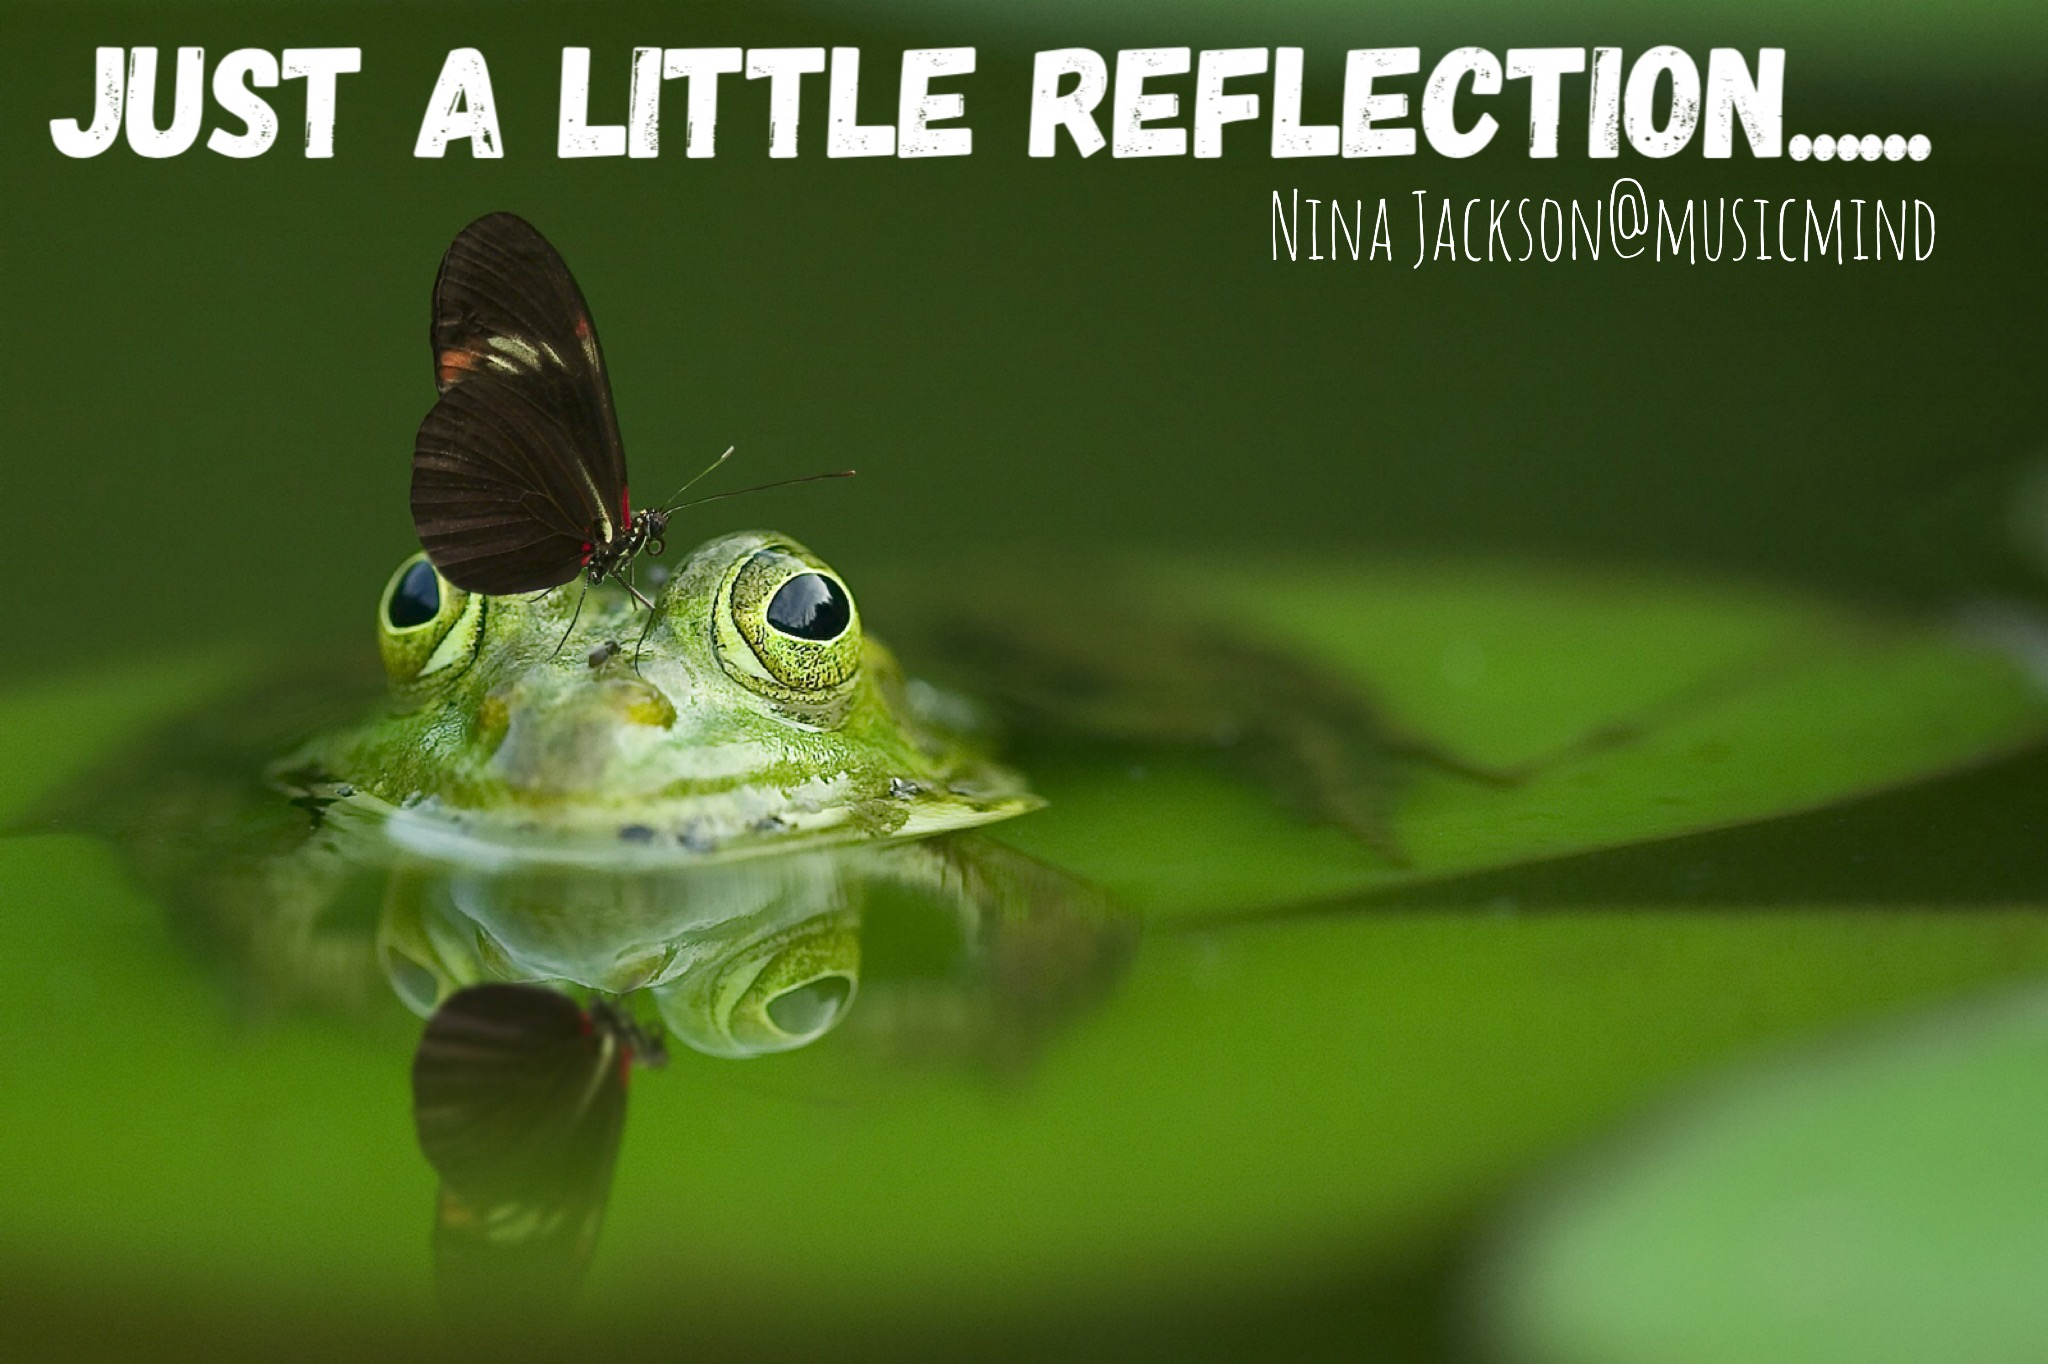 Just a little reflection….